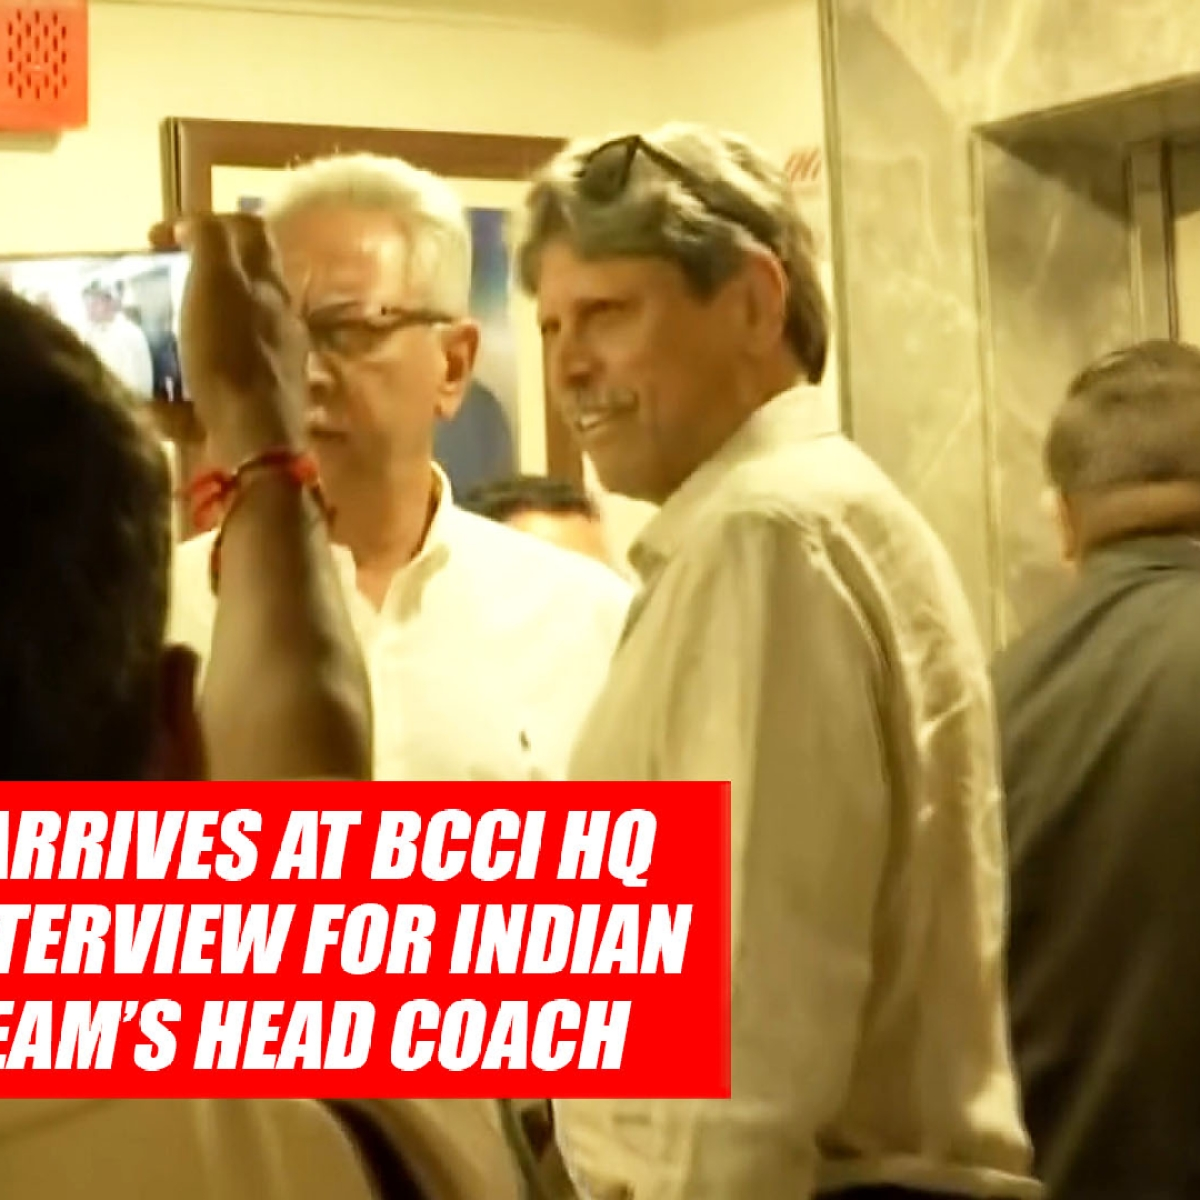 Kapil Dev Arrives At BCCI HQ To Conduct Interview For Indian Cricket Team's Head Coach